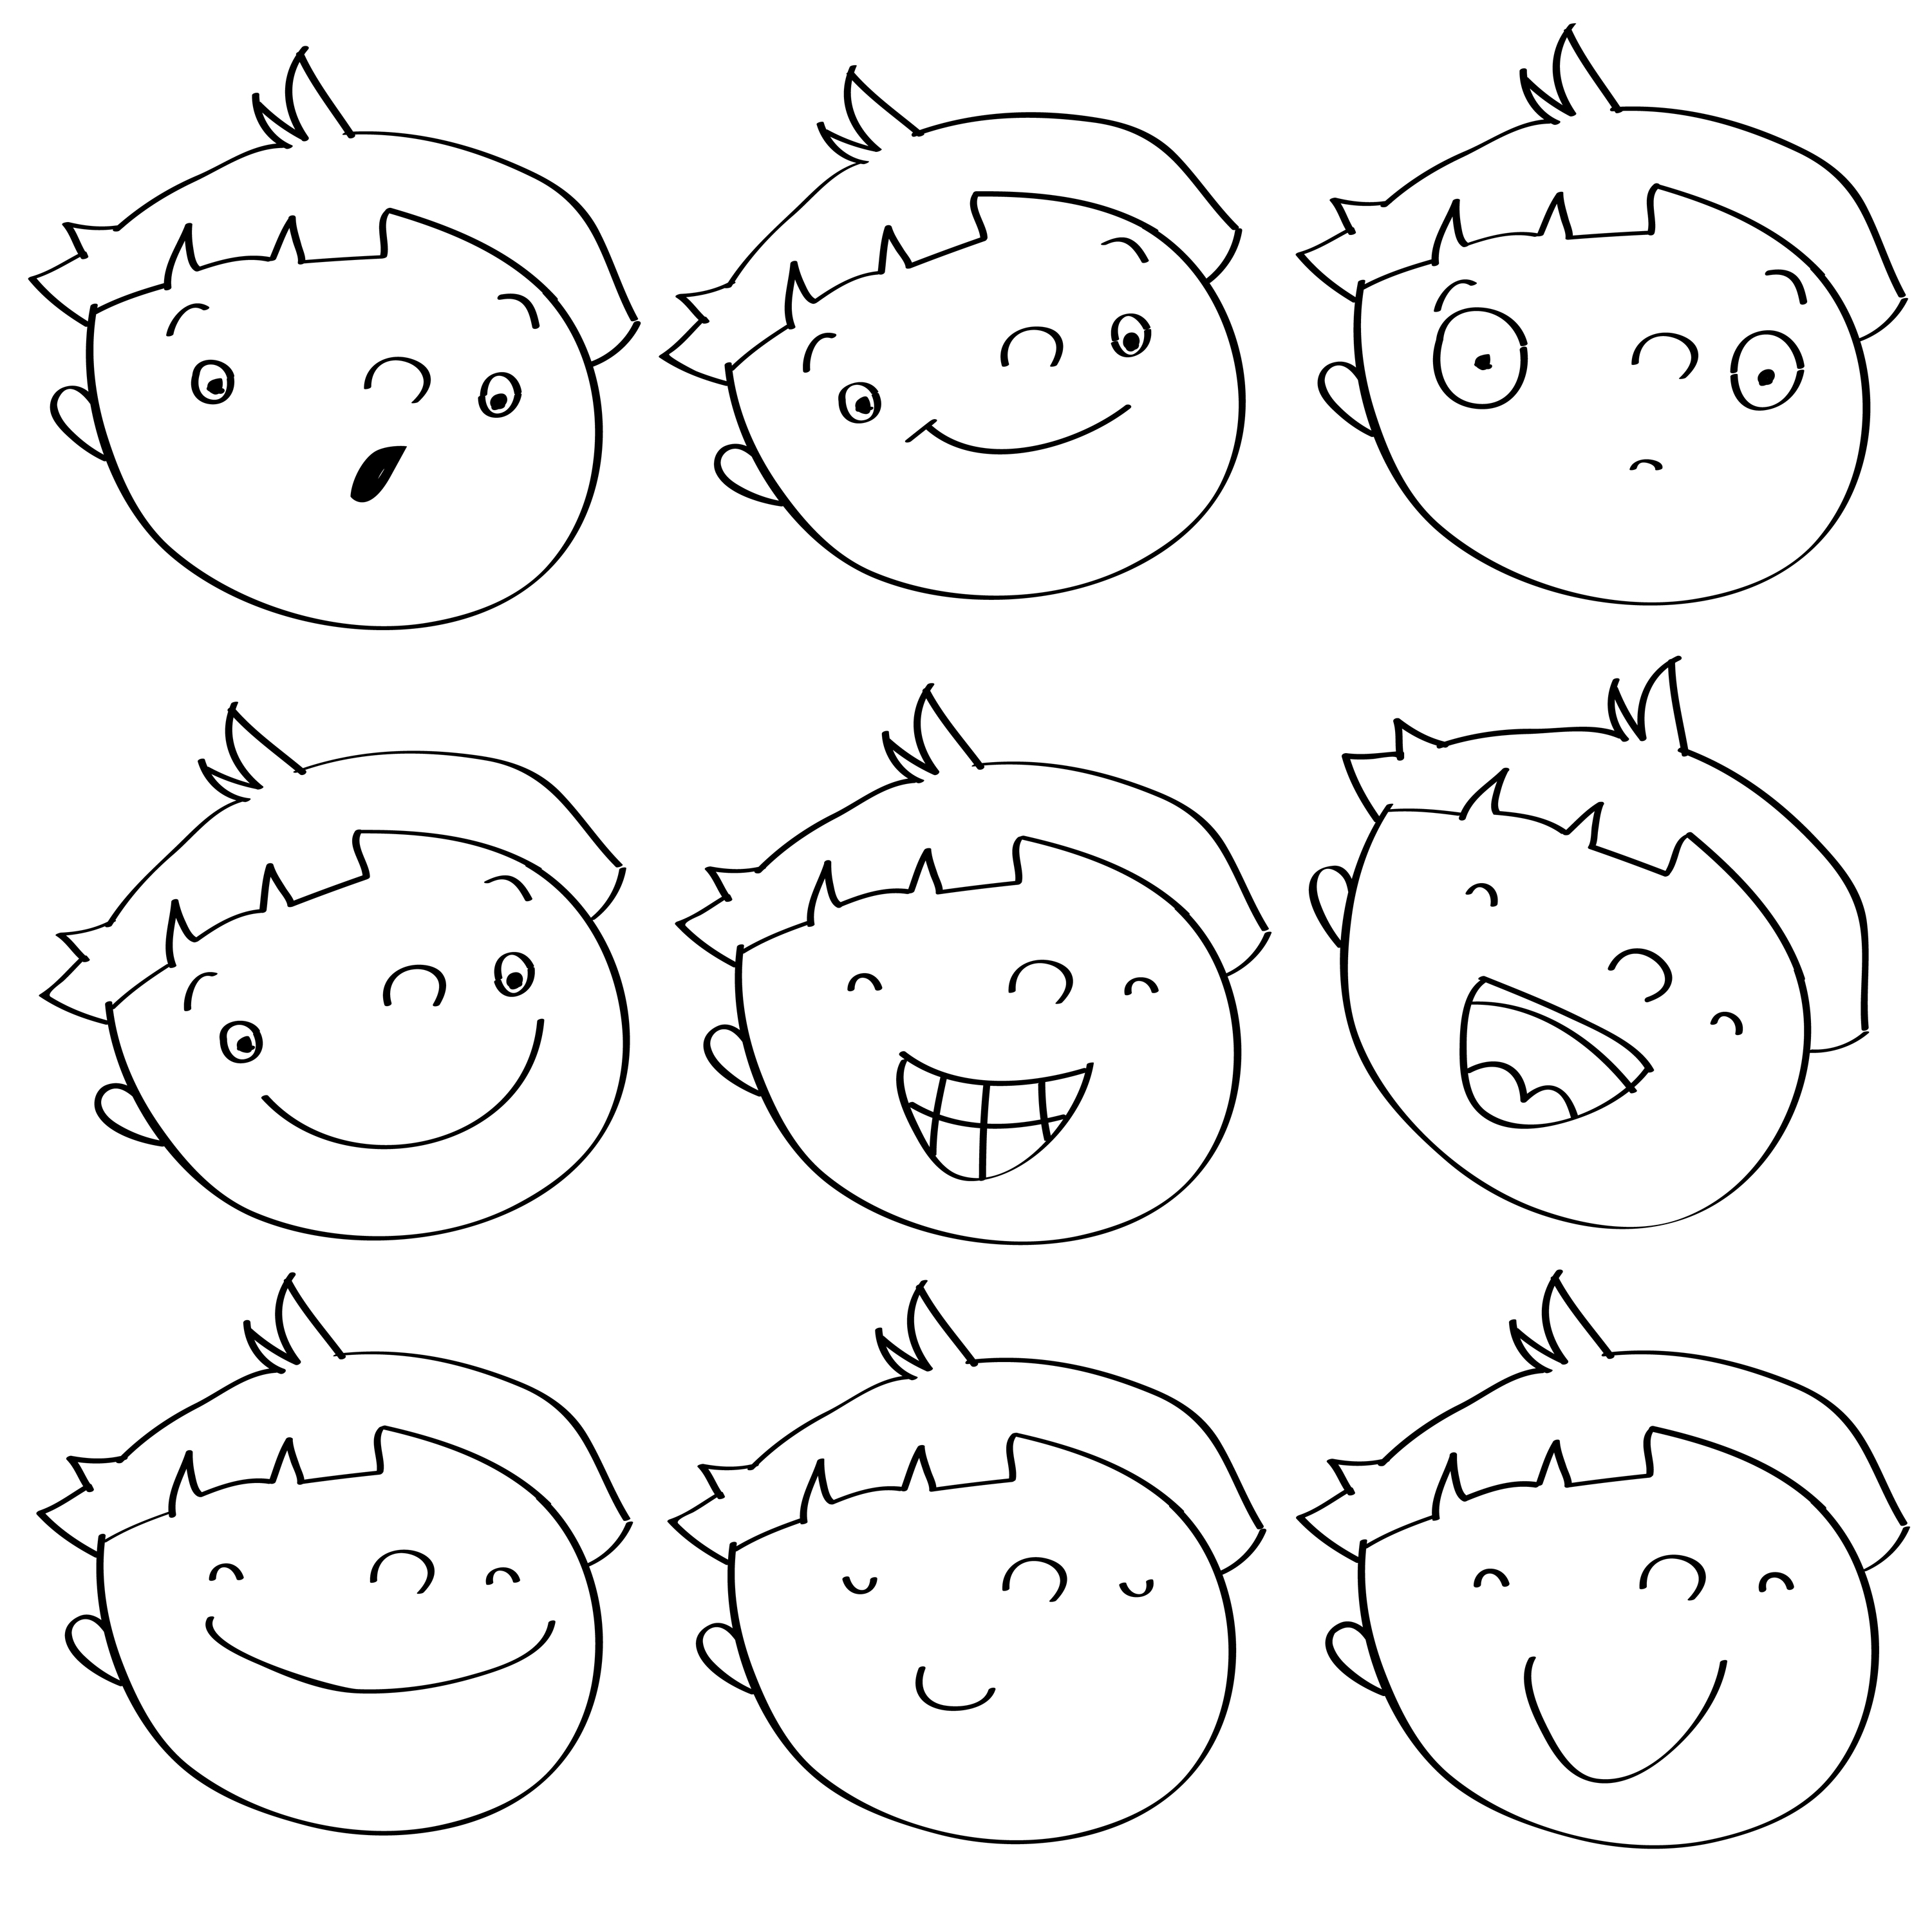 coloring printable emotion faces 16 best images of emotions faces worksheet emotions printable emotion faces coloring